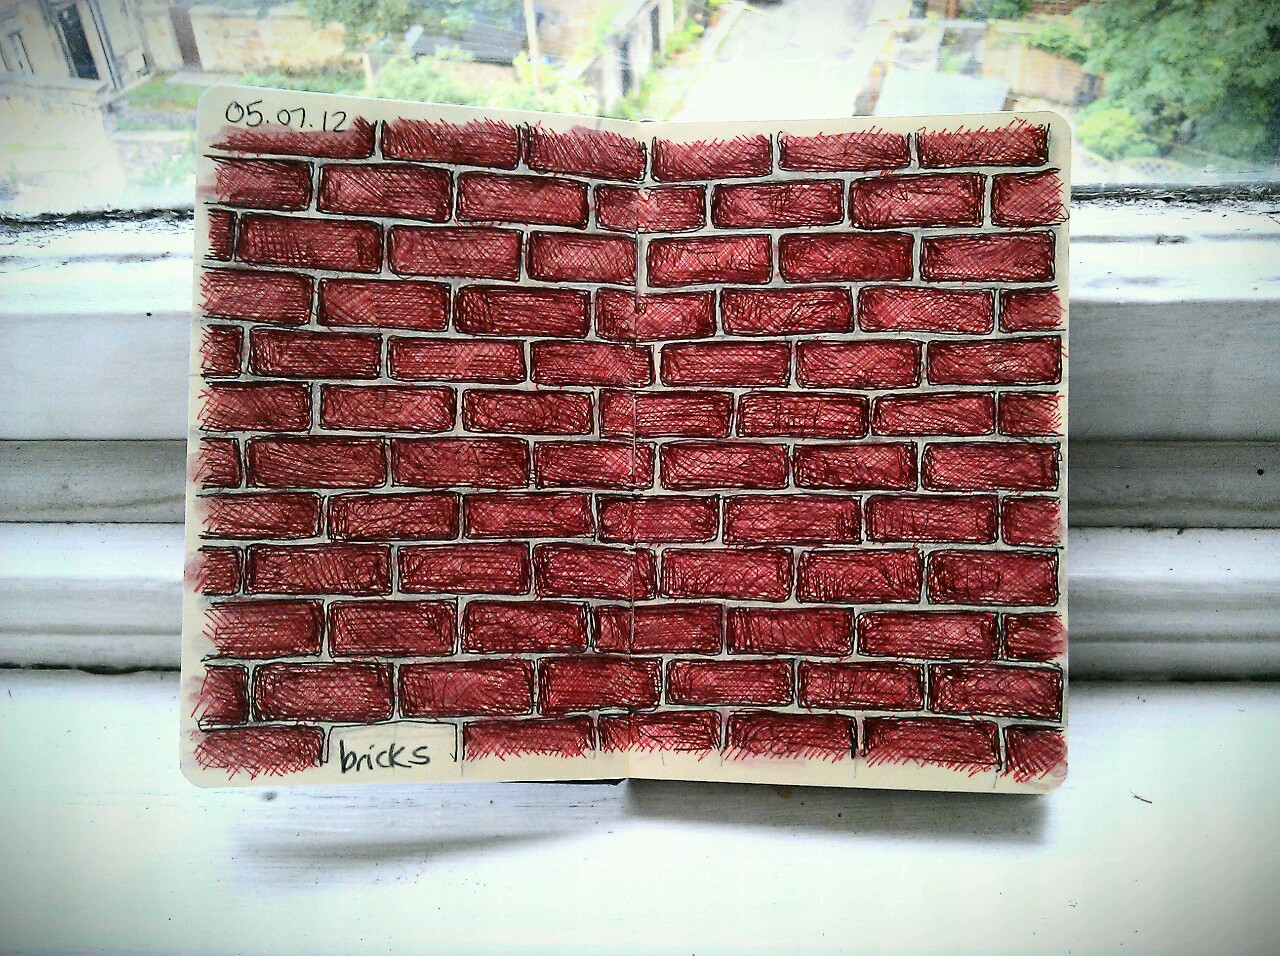 365 drawings later … day 156 … bricks [a little bit of repetition]